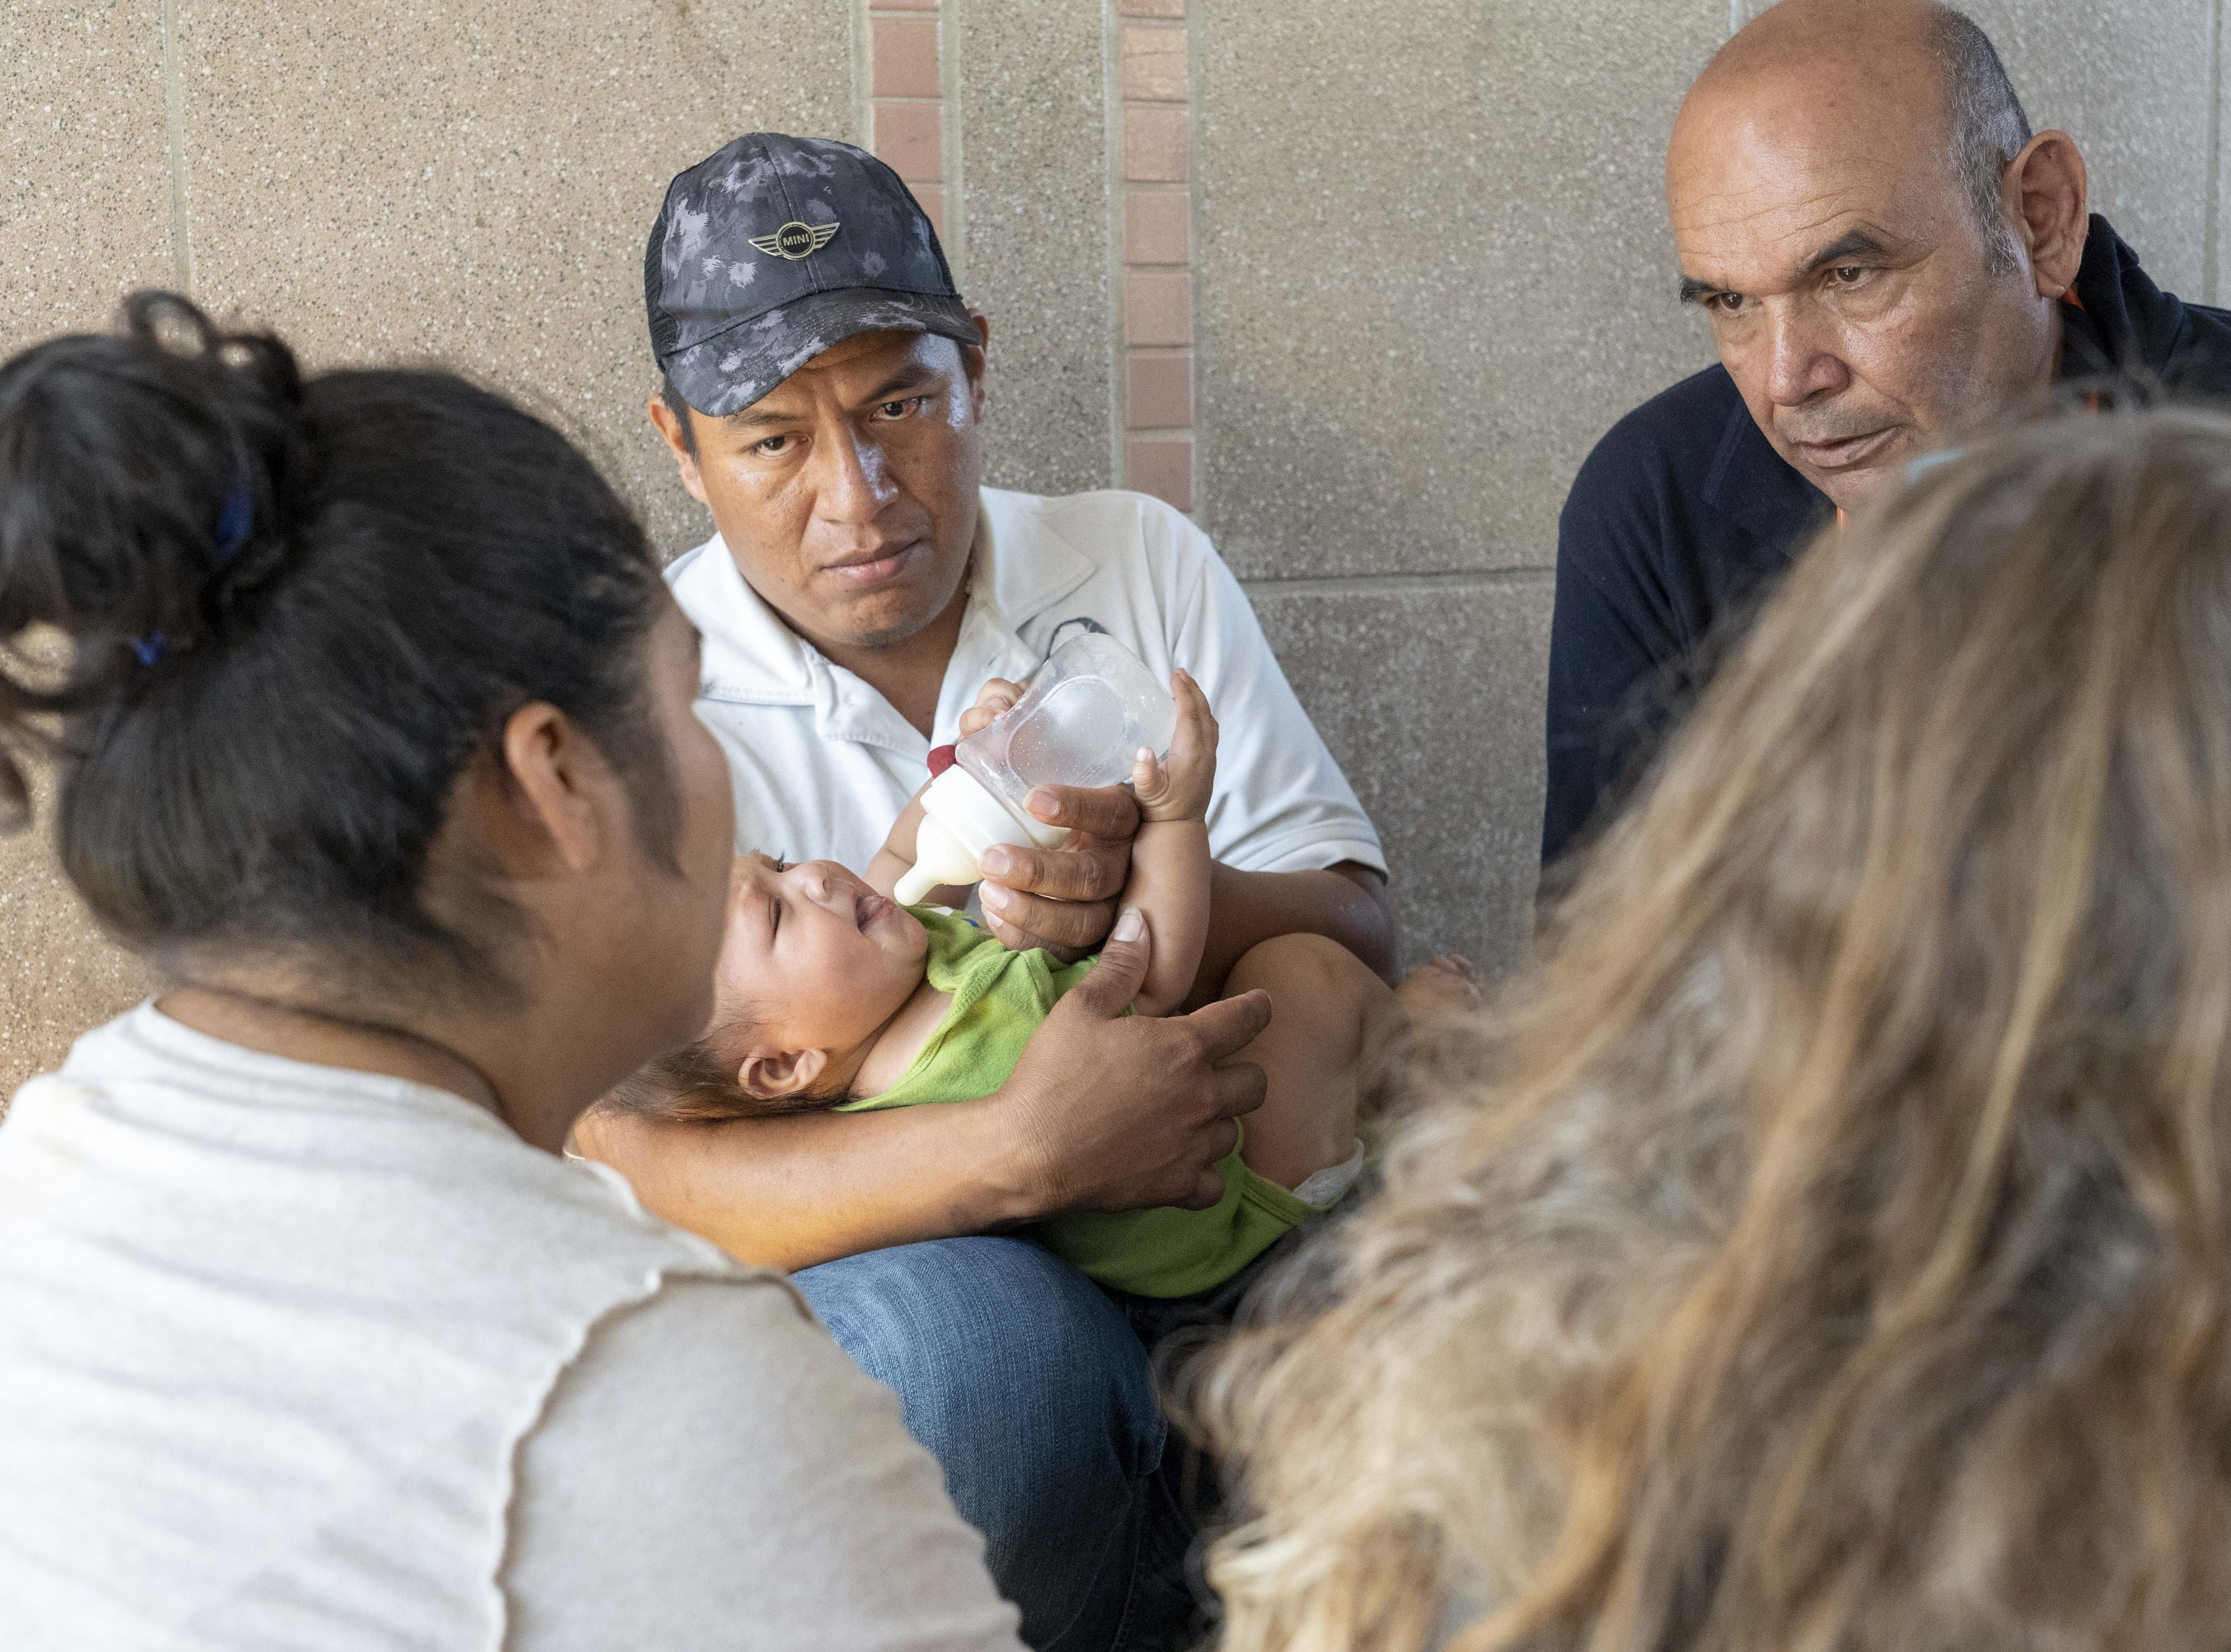 Elation Laguna Flores, Miriam Chino Gonzalez, and their baby, Ivan Laguna,  get help from Frank Martin, a Mexican Samaritan, at the DeConcini port of entry. Customs officers increased the processing of asylum seekers in Nogales, clearing the lengthy queue in a matter of days.